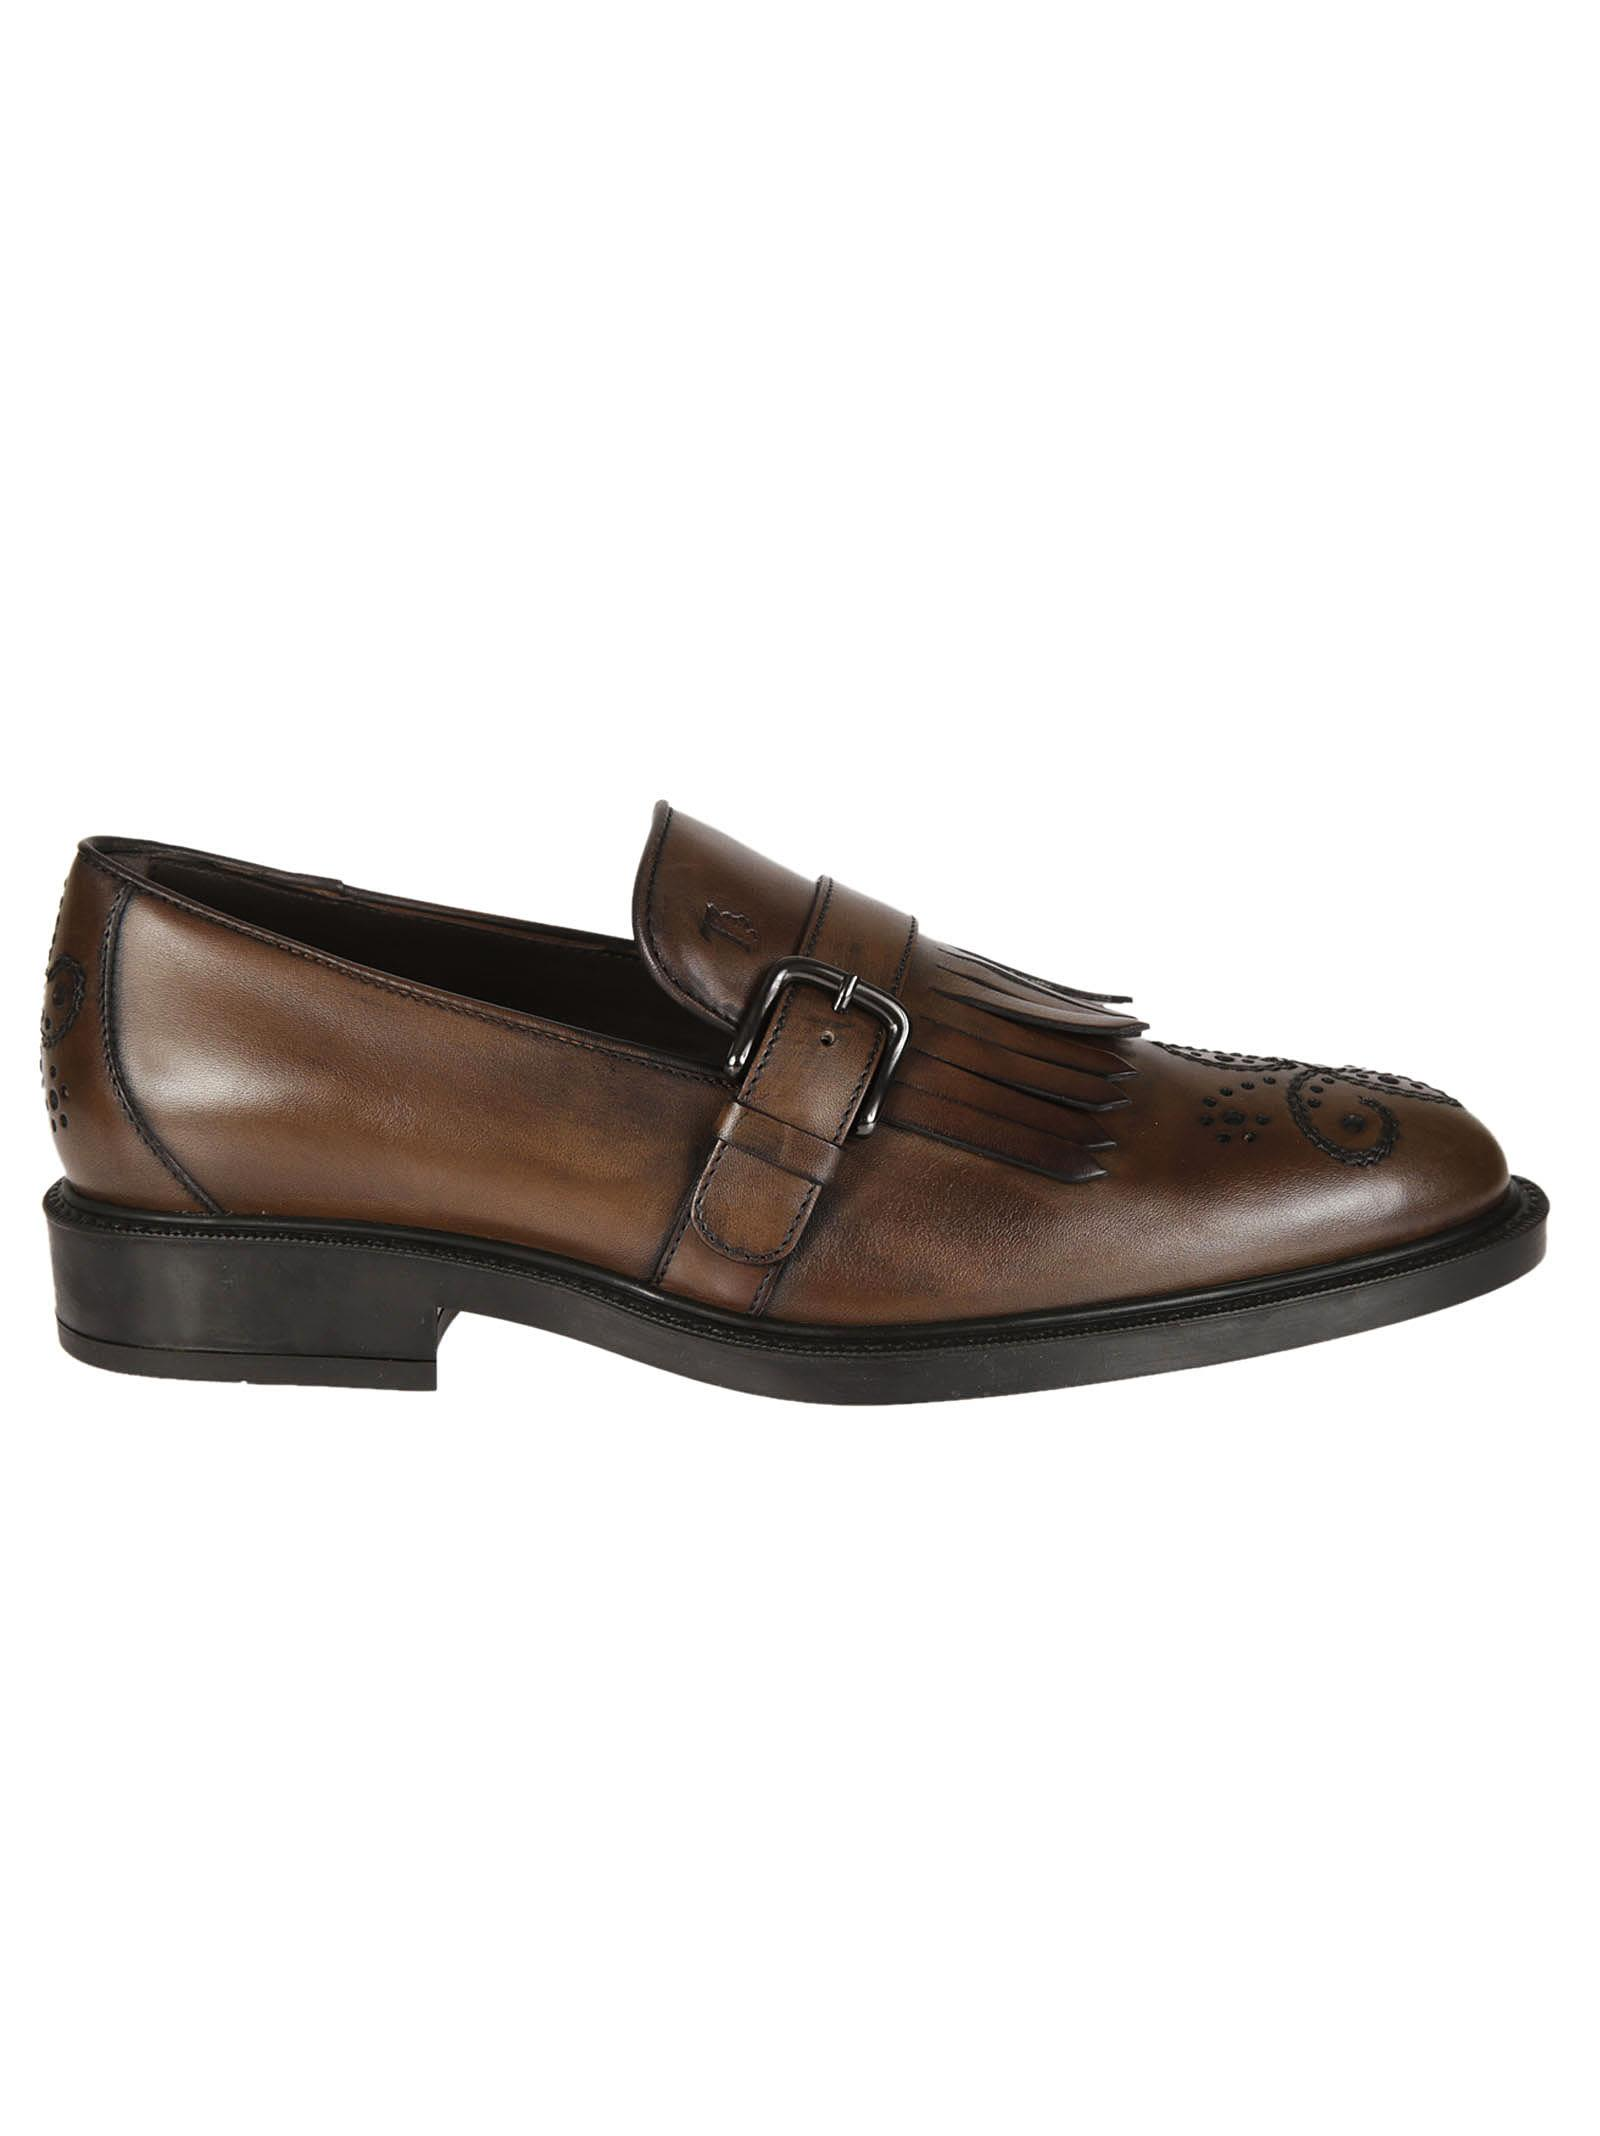 Tods Fringed Monk Shoes